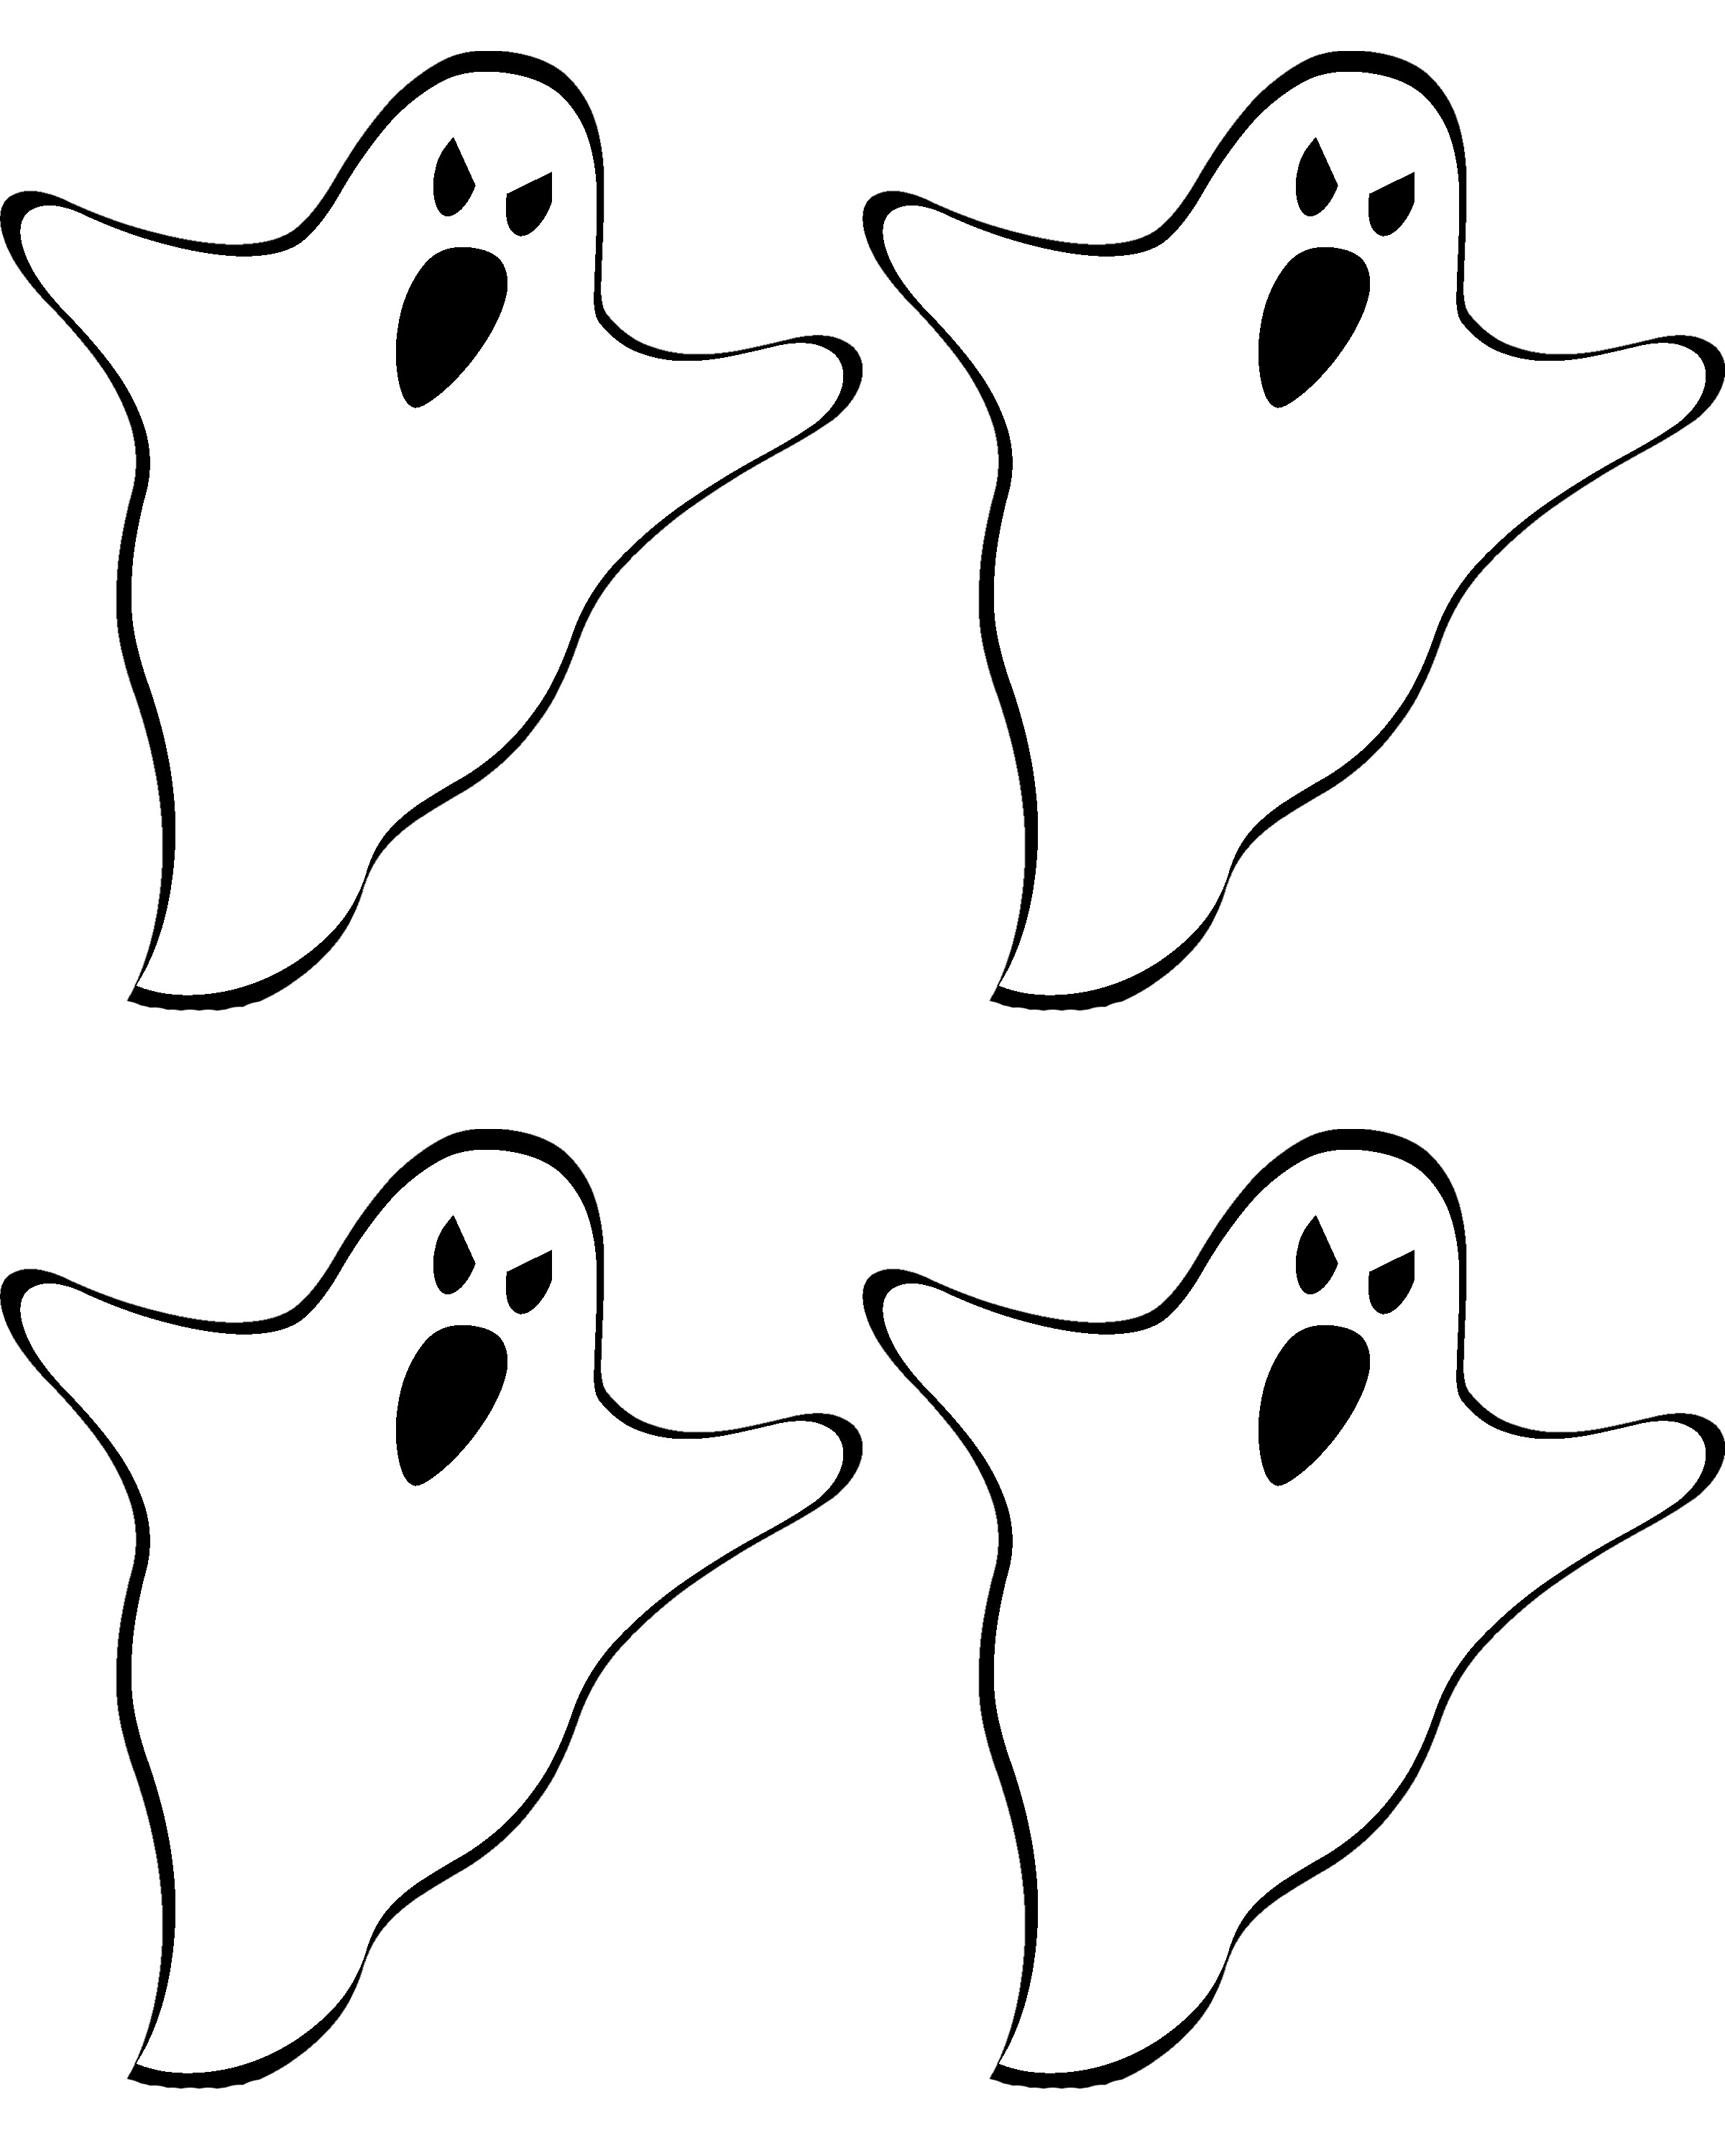 Haunted House Silhouette Template At Getdrawings